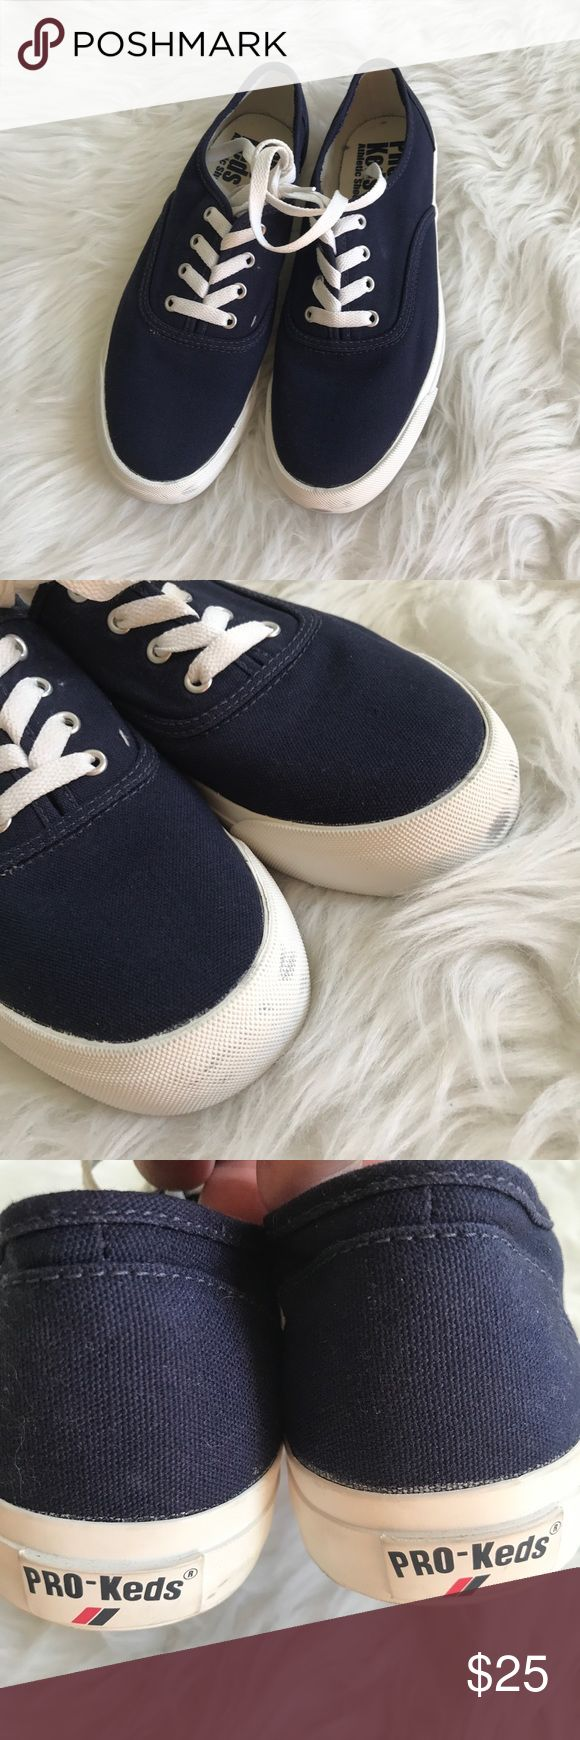 PRO-KEDS Navy Tennis Shoes sz 7 Brand new pair of navy shoes by Pro-Keds. Size 7. Keds Shoes